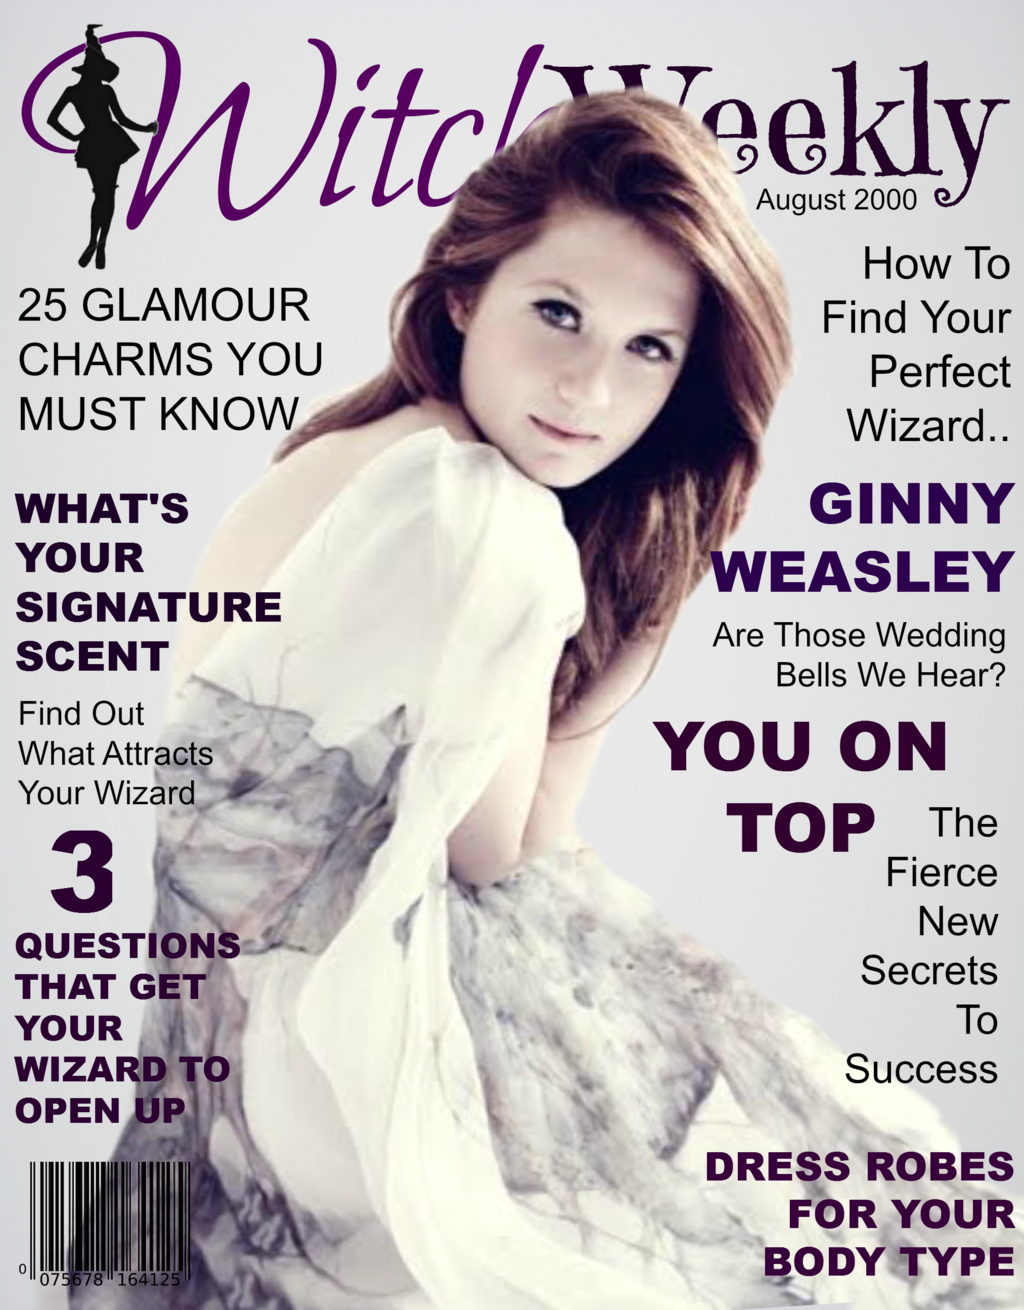 ... out the stunning covers of the 'Witch Weekly' magazine below